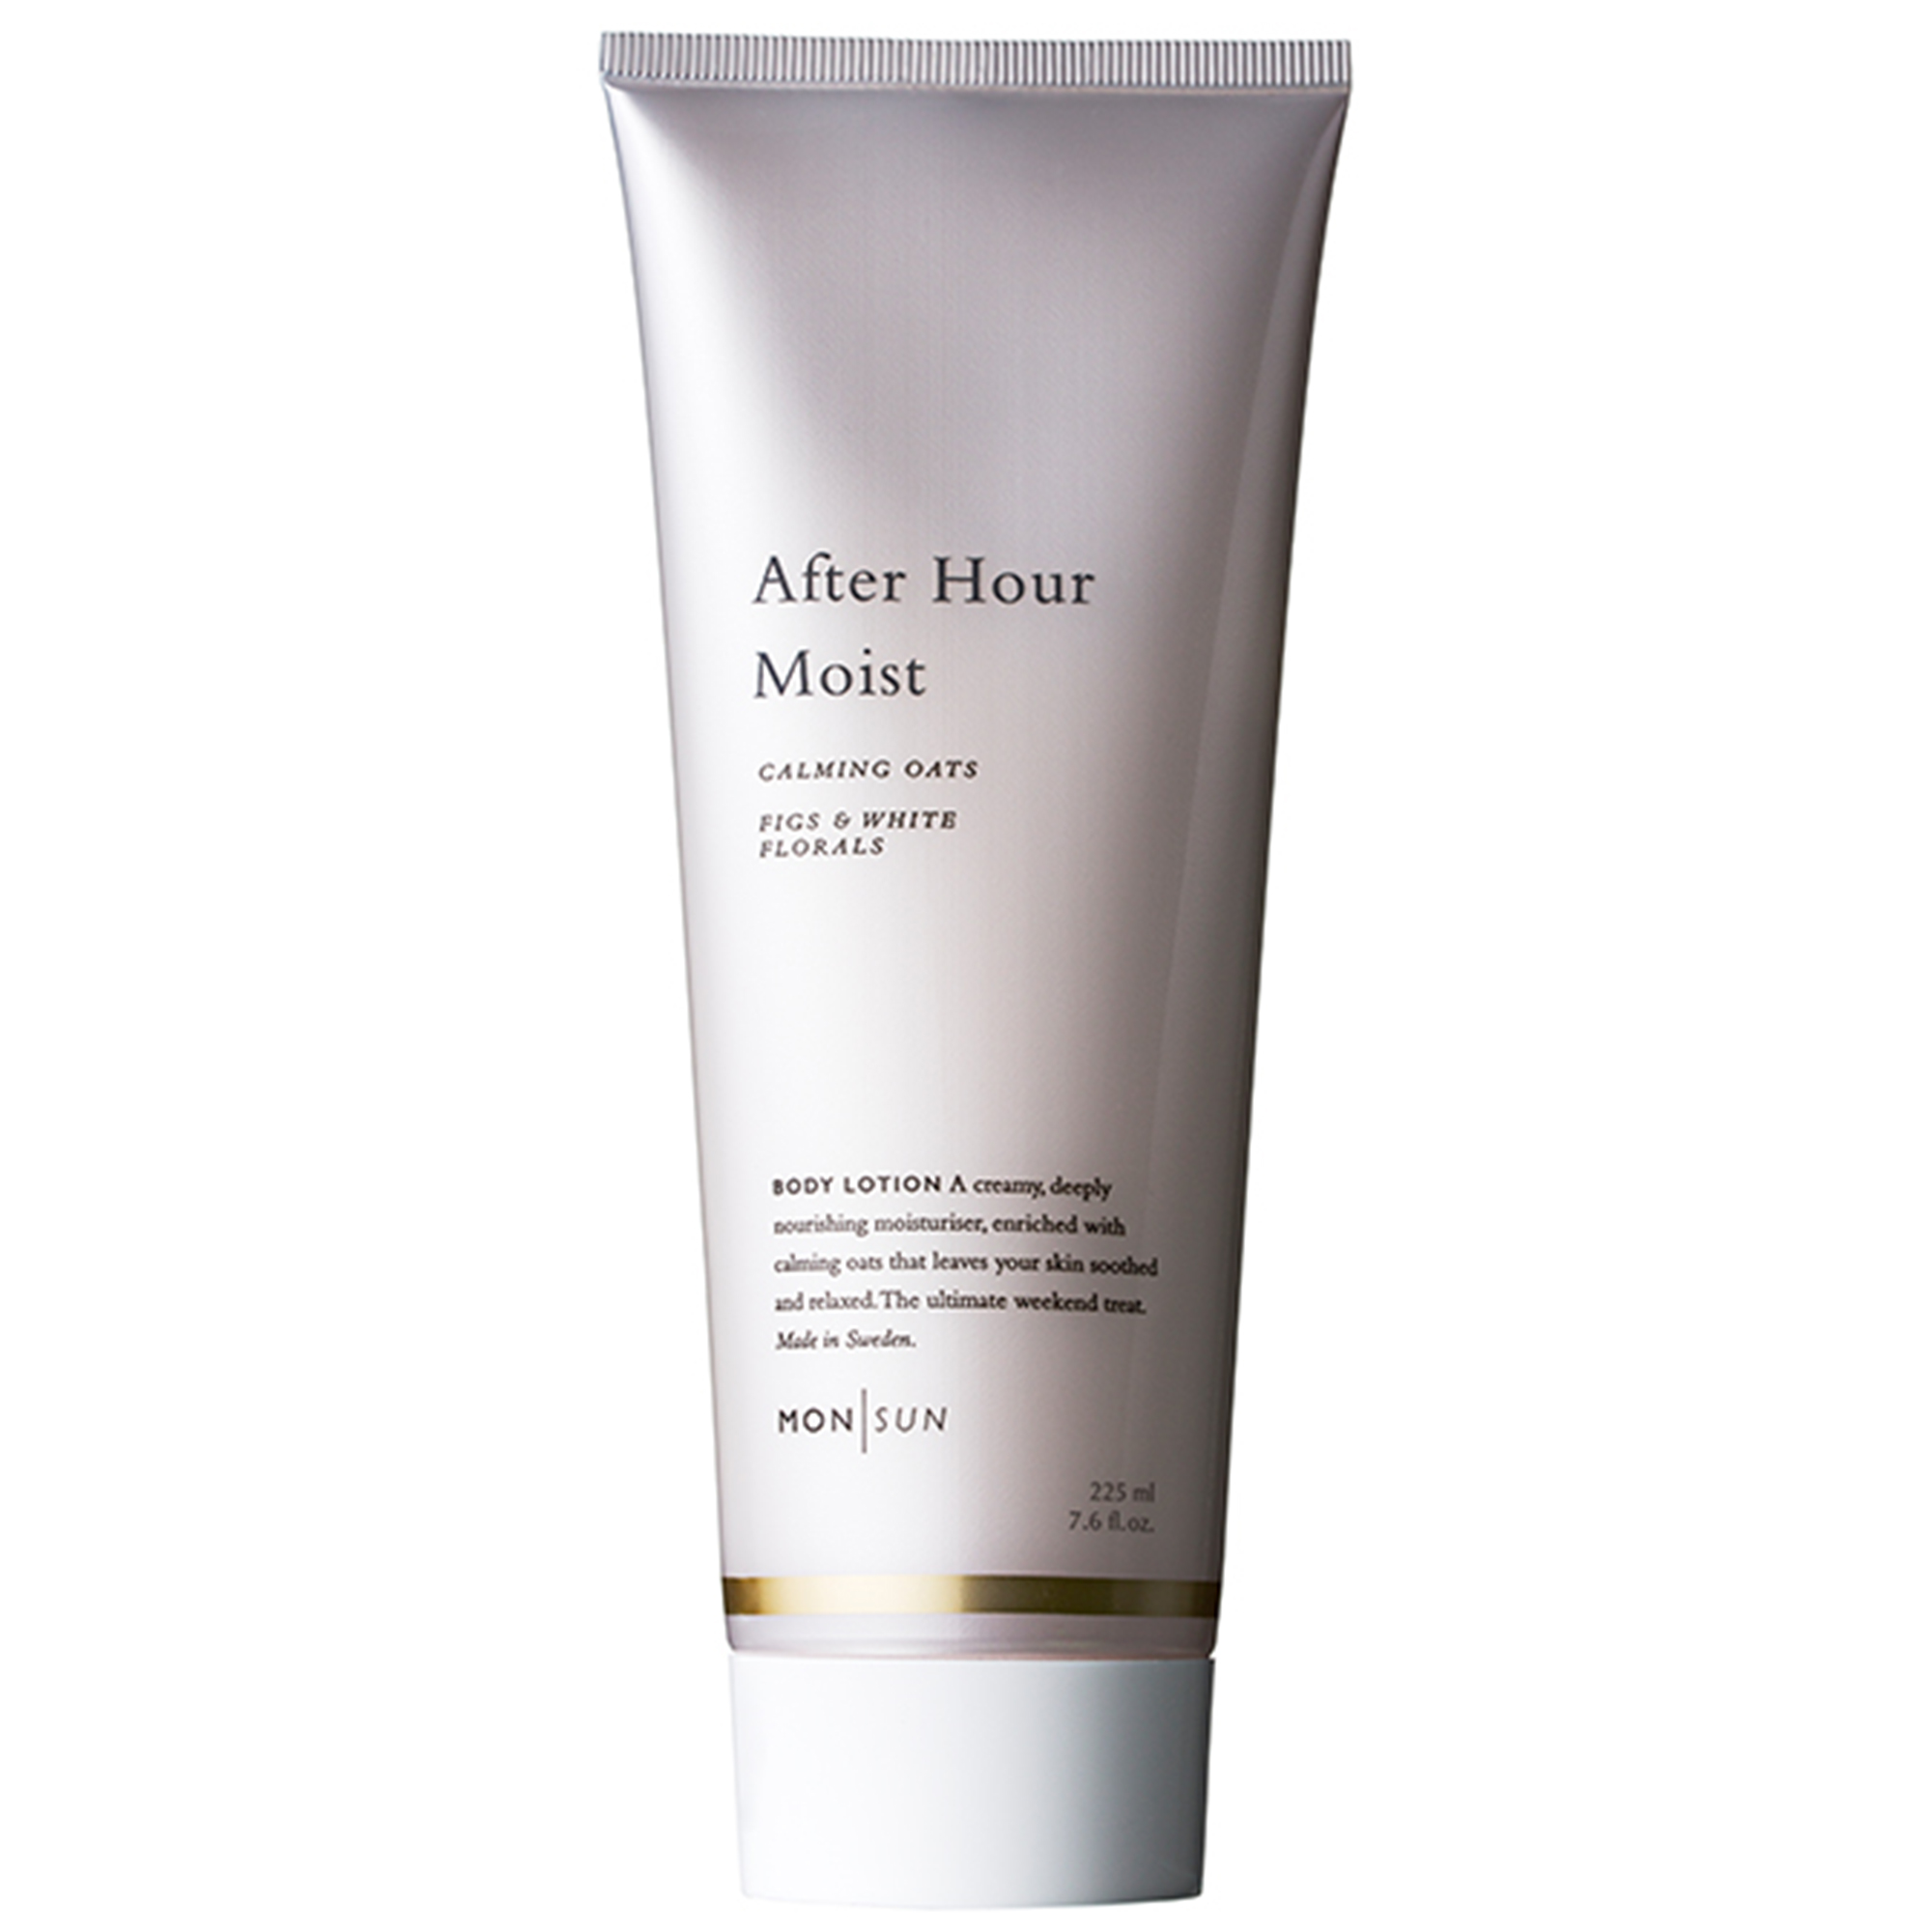 After Hour Moist Calming Oats Body Lotion 225 ml